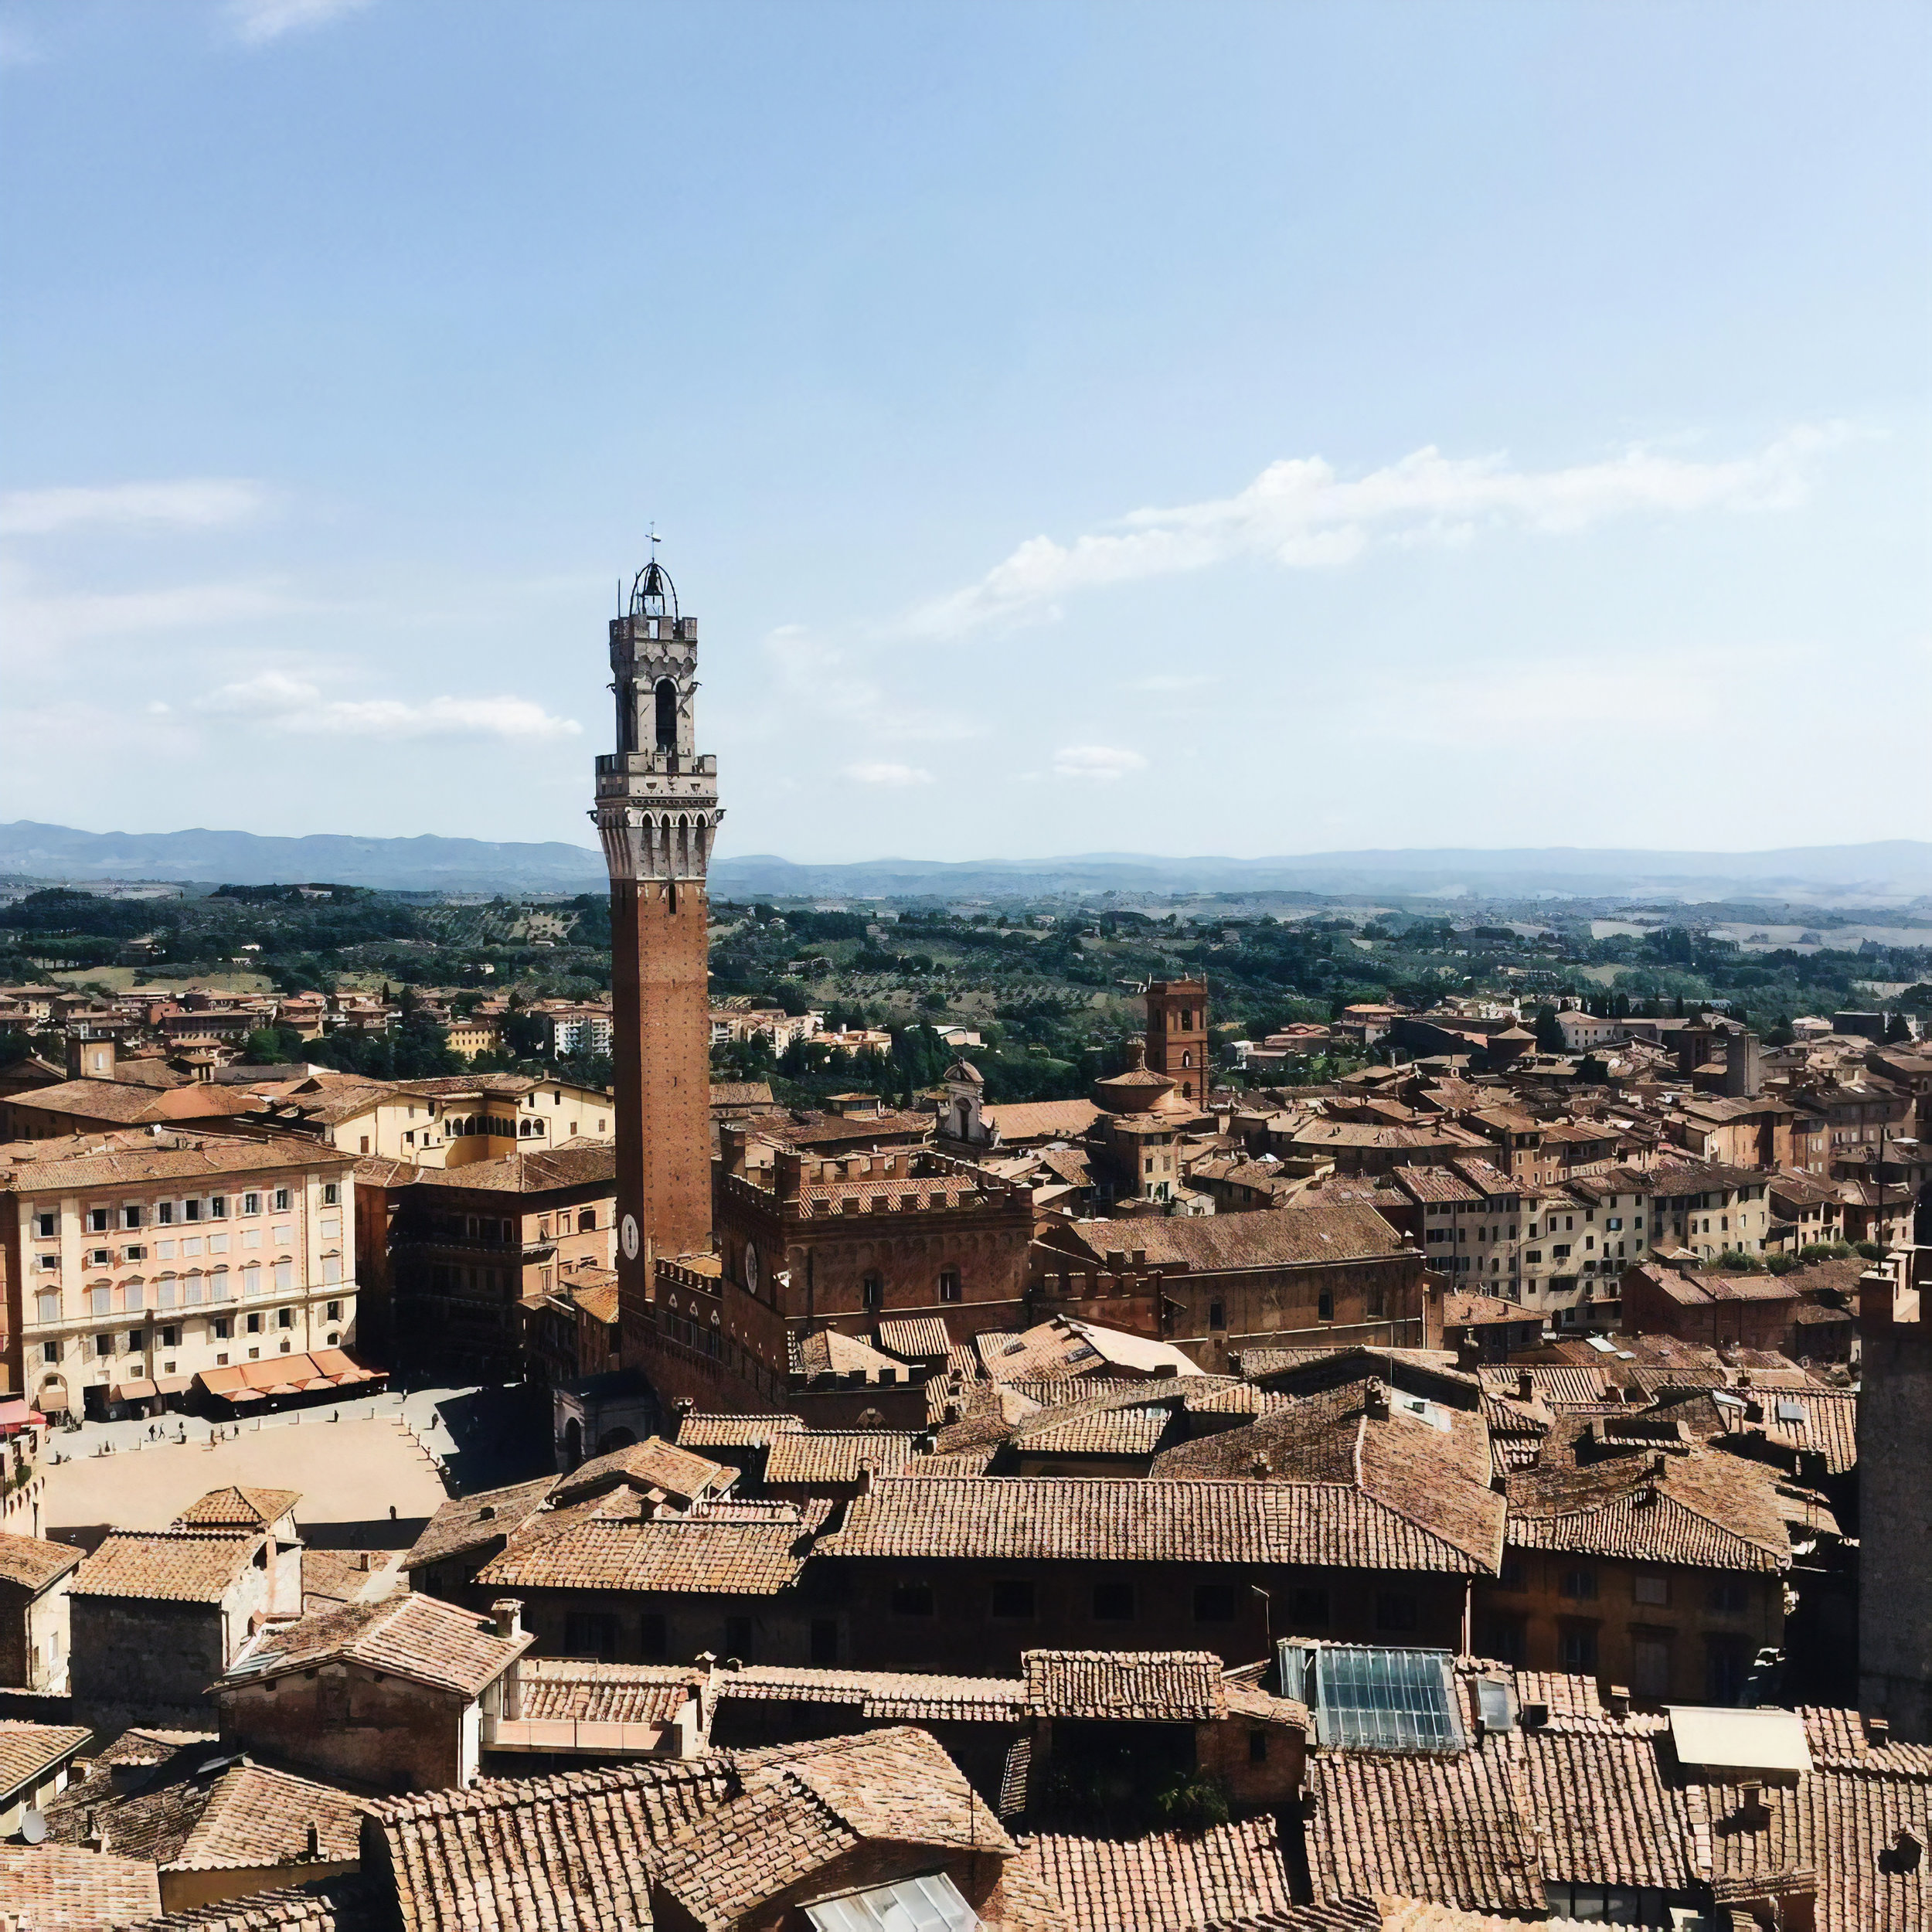 The view from the top of the Duomo in Siena, Italy